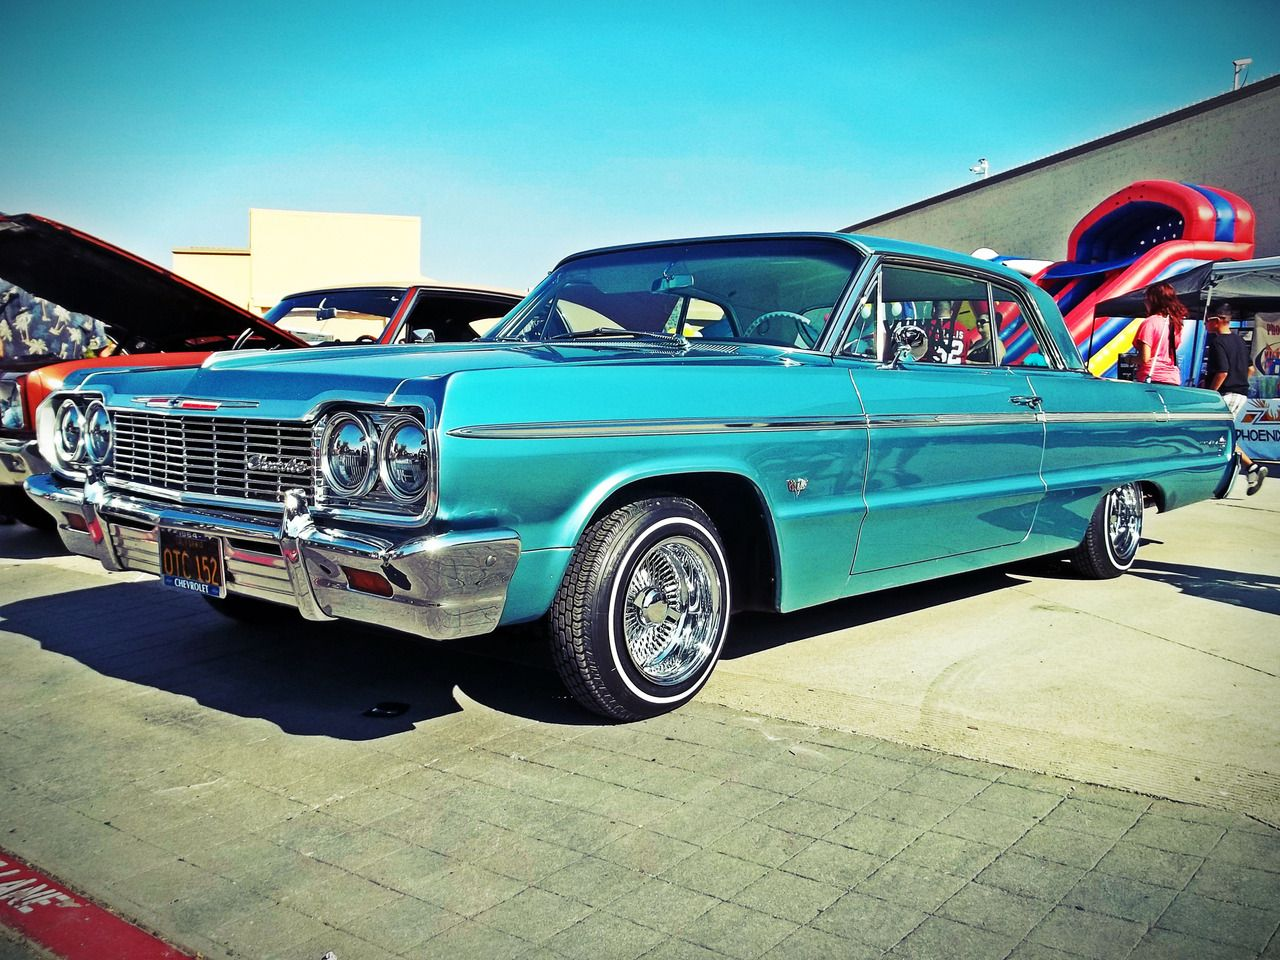 Classic Chevrolet Impala Cars And Lowriders 1958 1962 Impala 1963 Impala 1964 Impala 1965 1976 Classic Cars Impala Classic Chevrolet